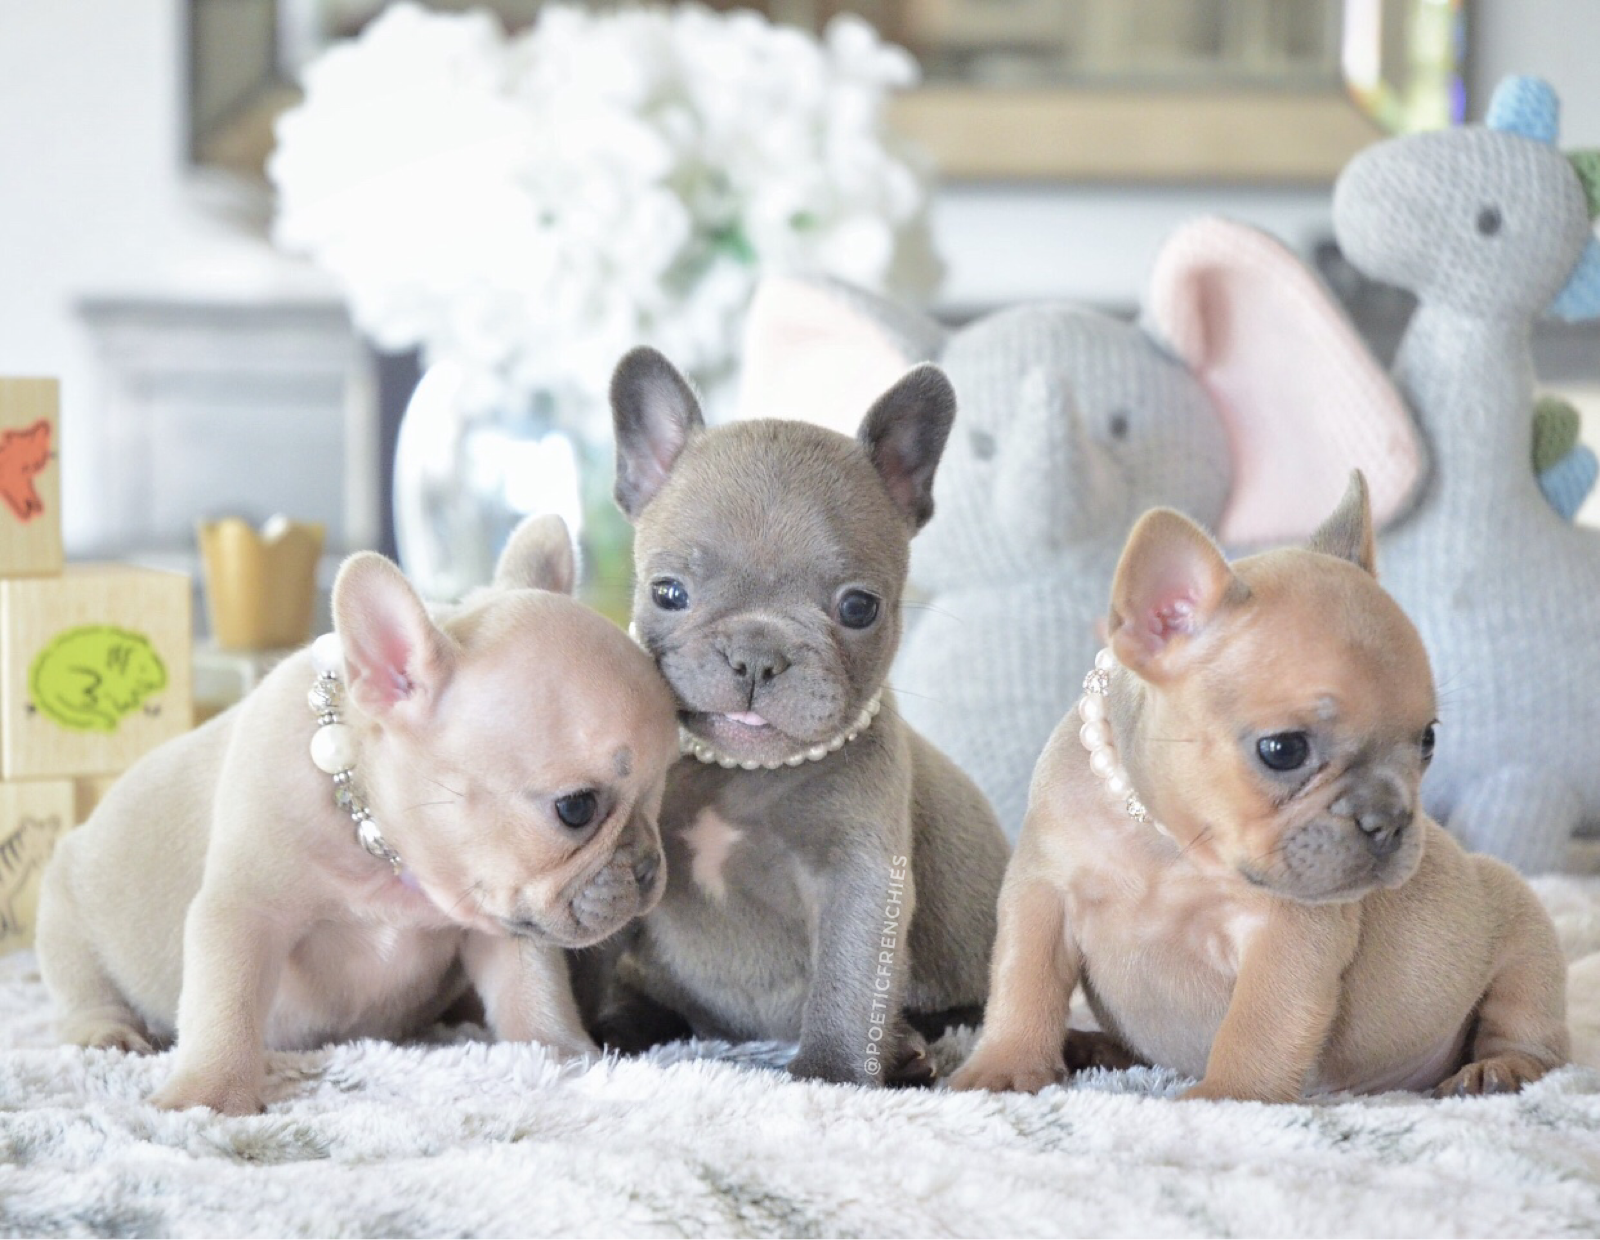 3 Tiny Girls They Are Available To Loving Homes Www Poeticfrenchbulldogs Com Frenchbulldog Poetic Puppy Time French Bulldog Puppies Cute Animals